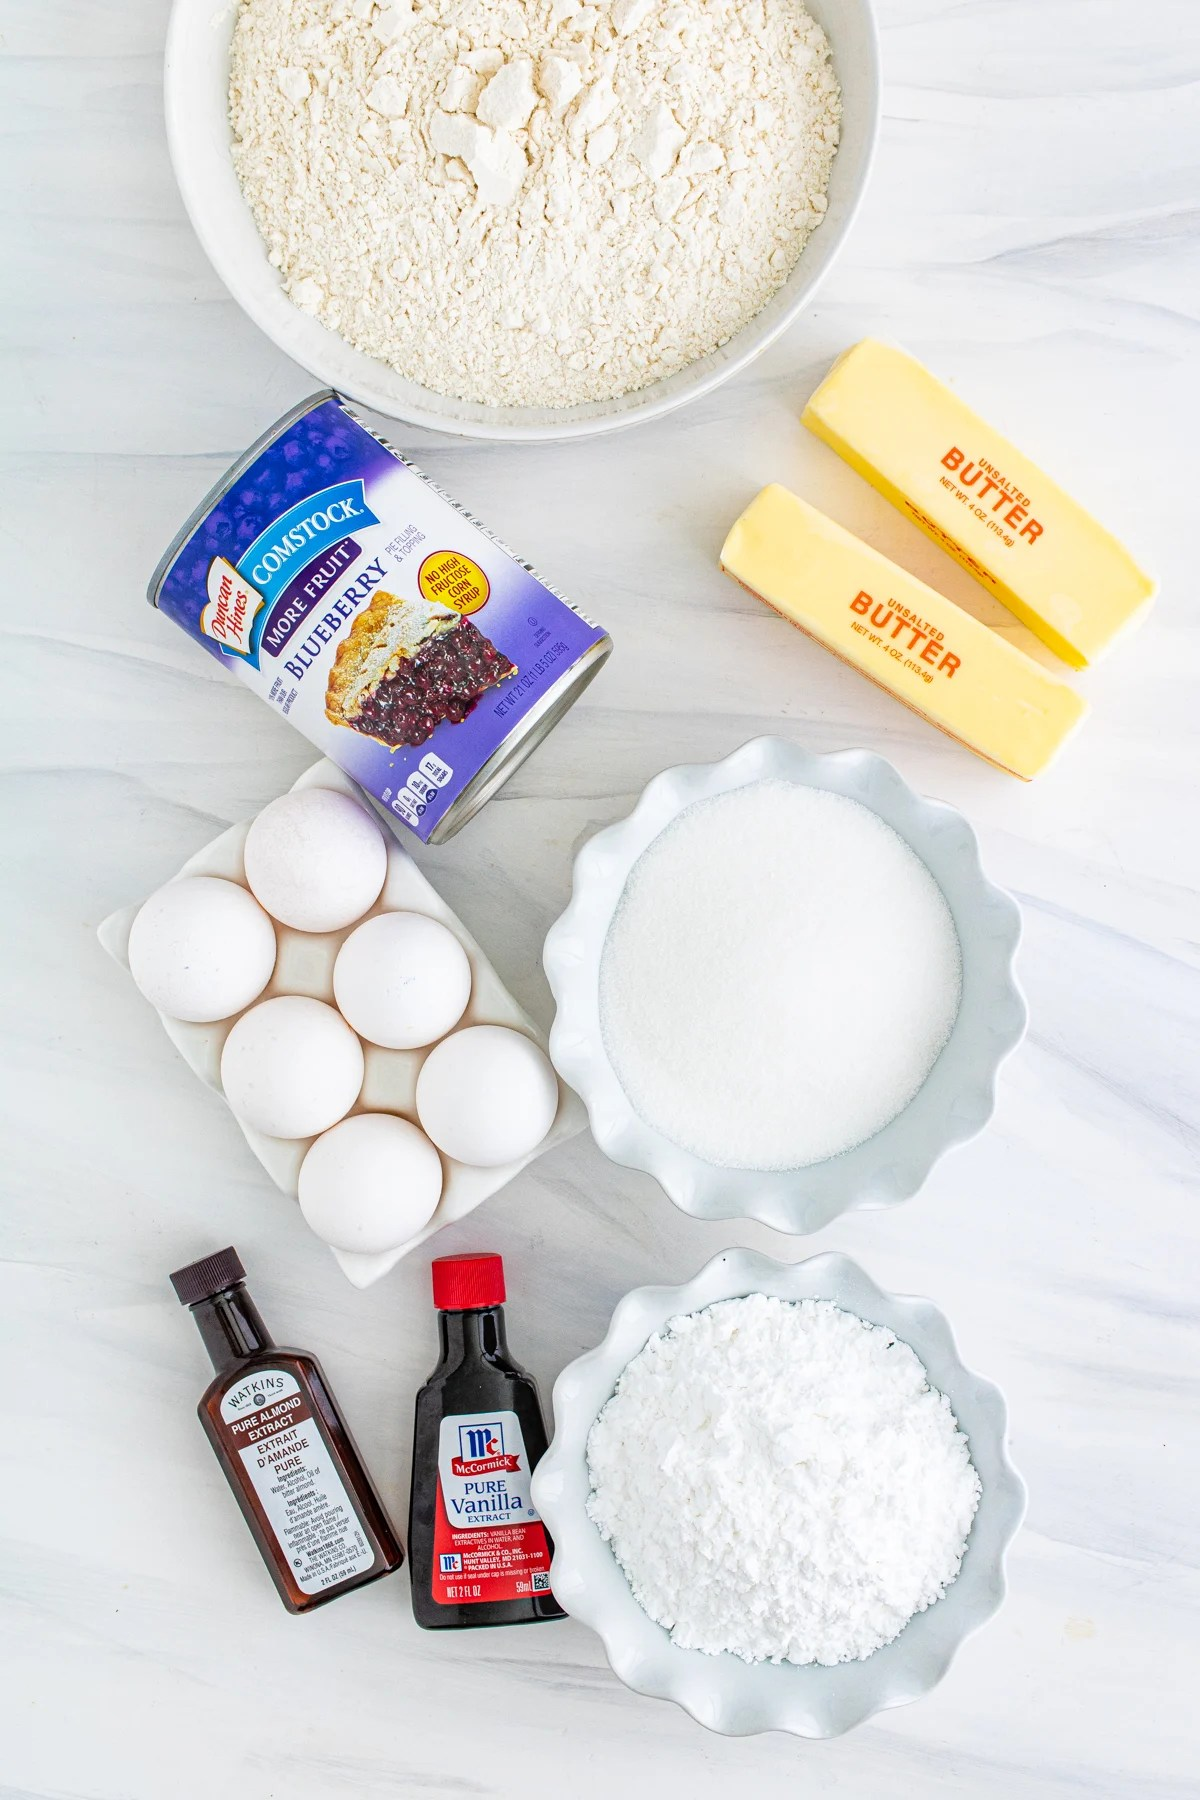 Ingredients needed to make Blueberry Bars